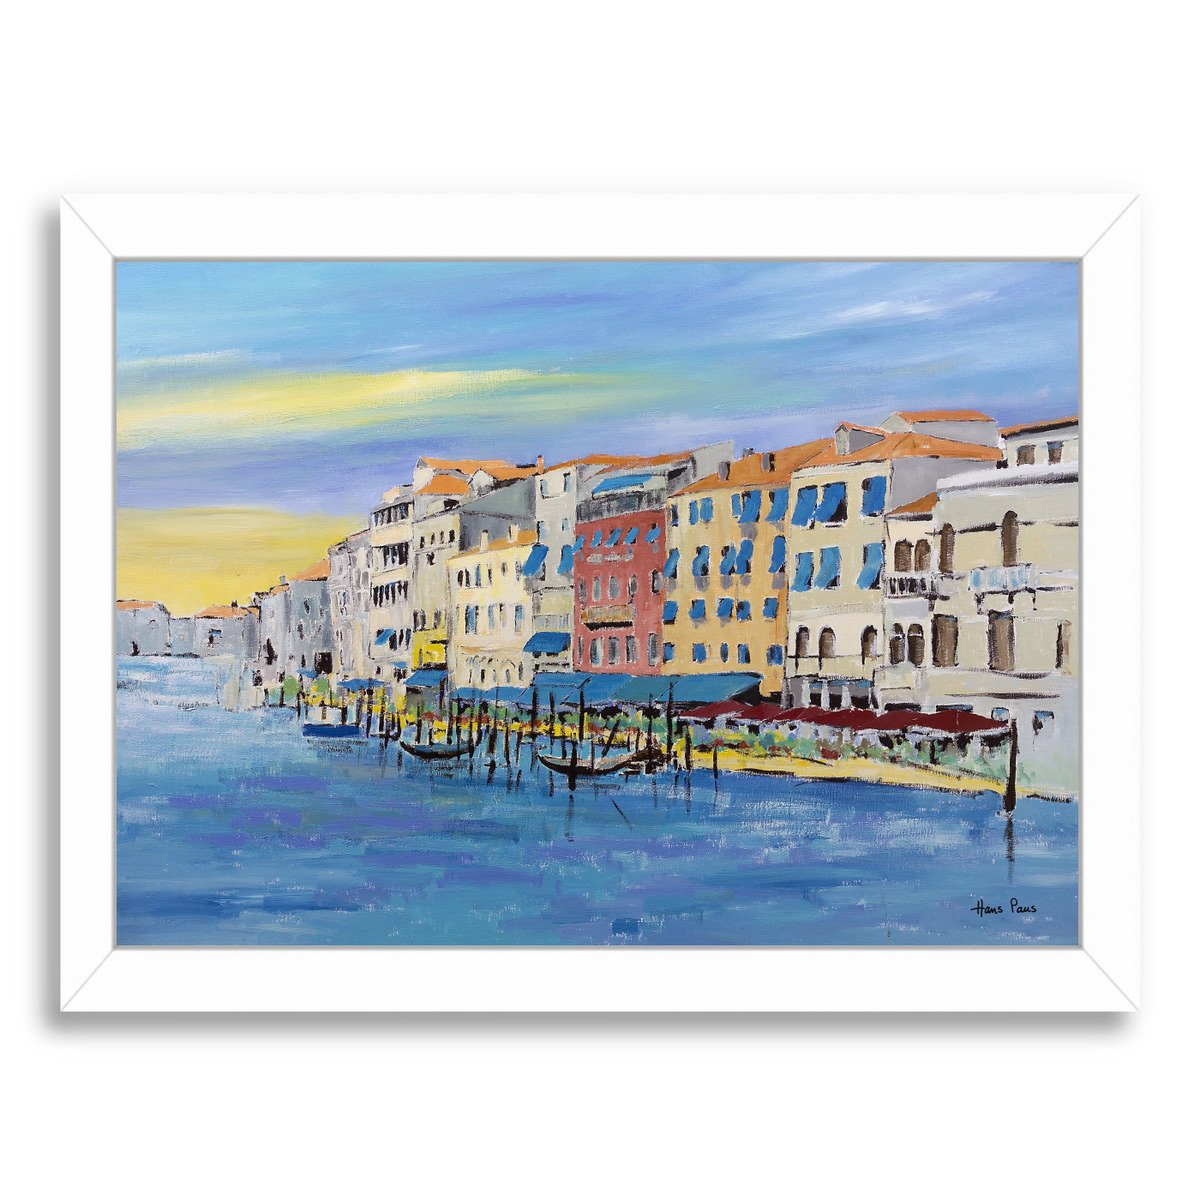 Venice By Hans Paus - Framed Print - Americanflat